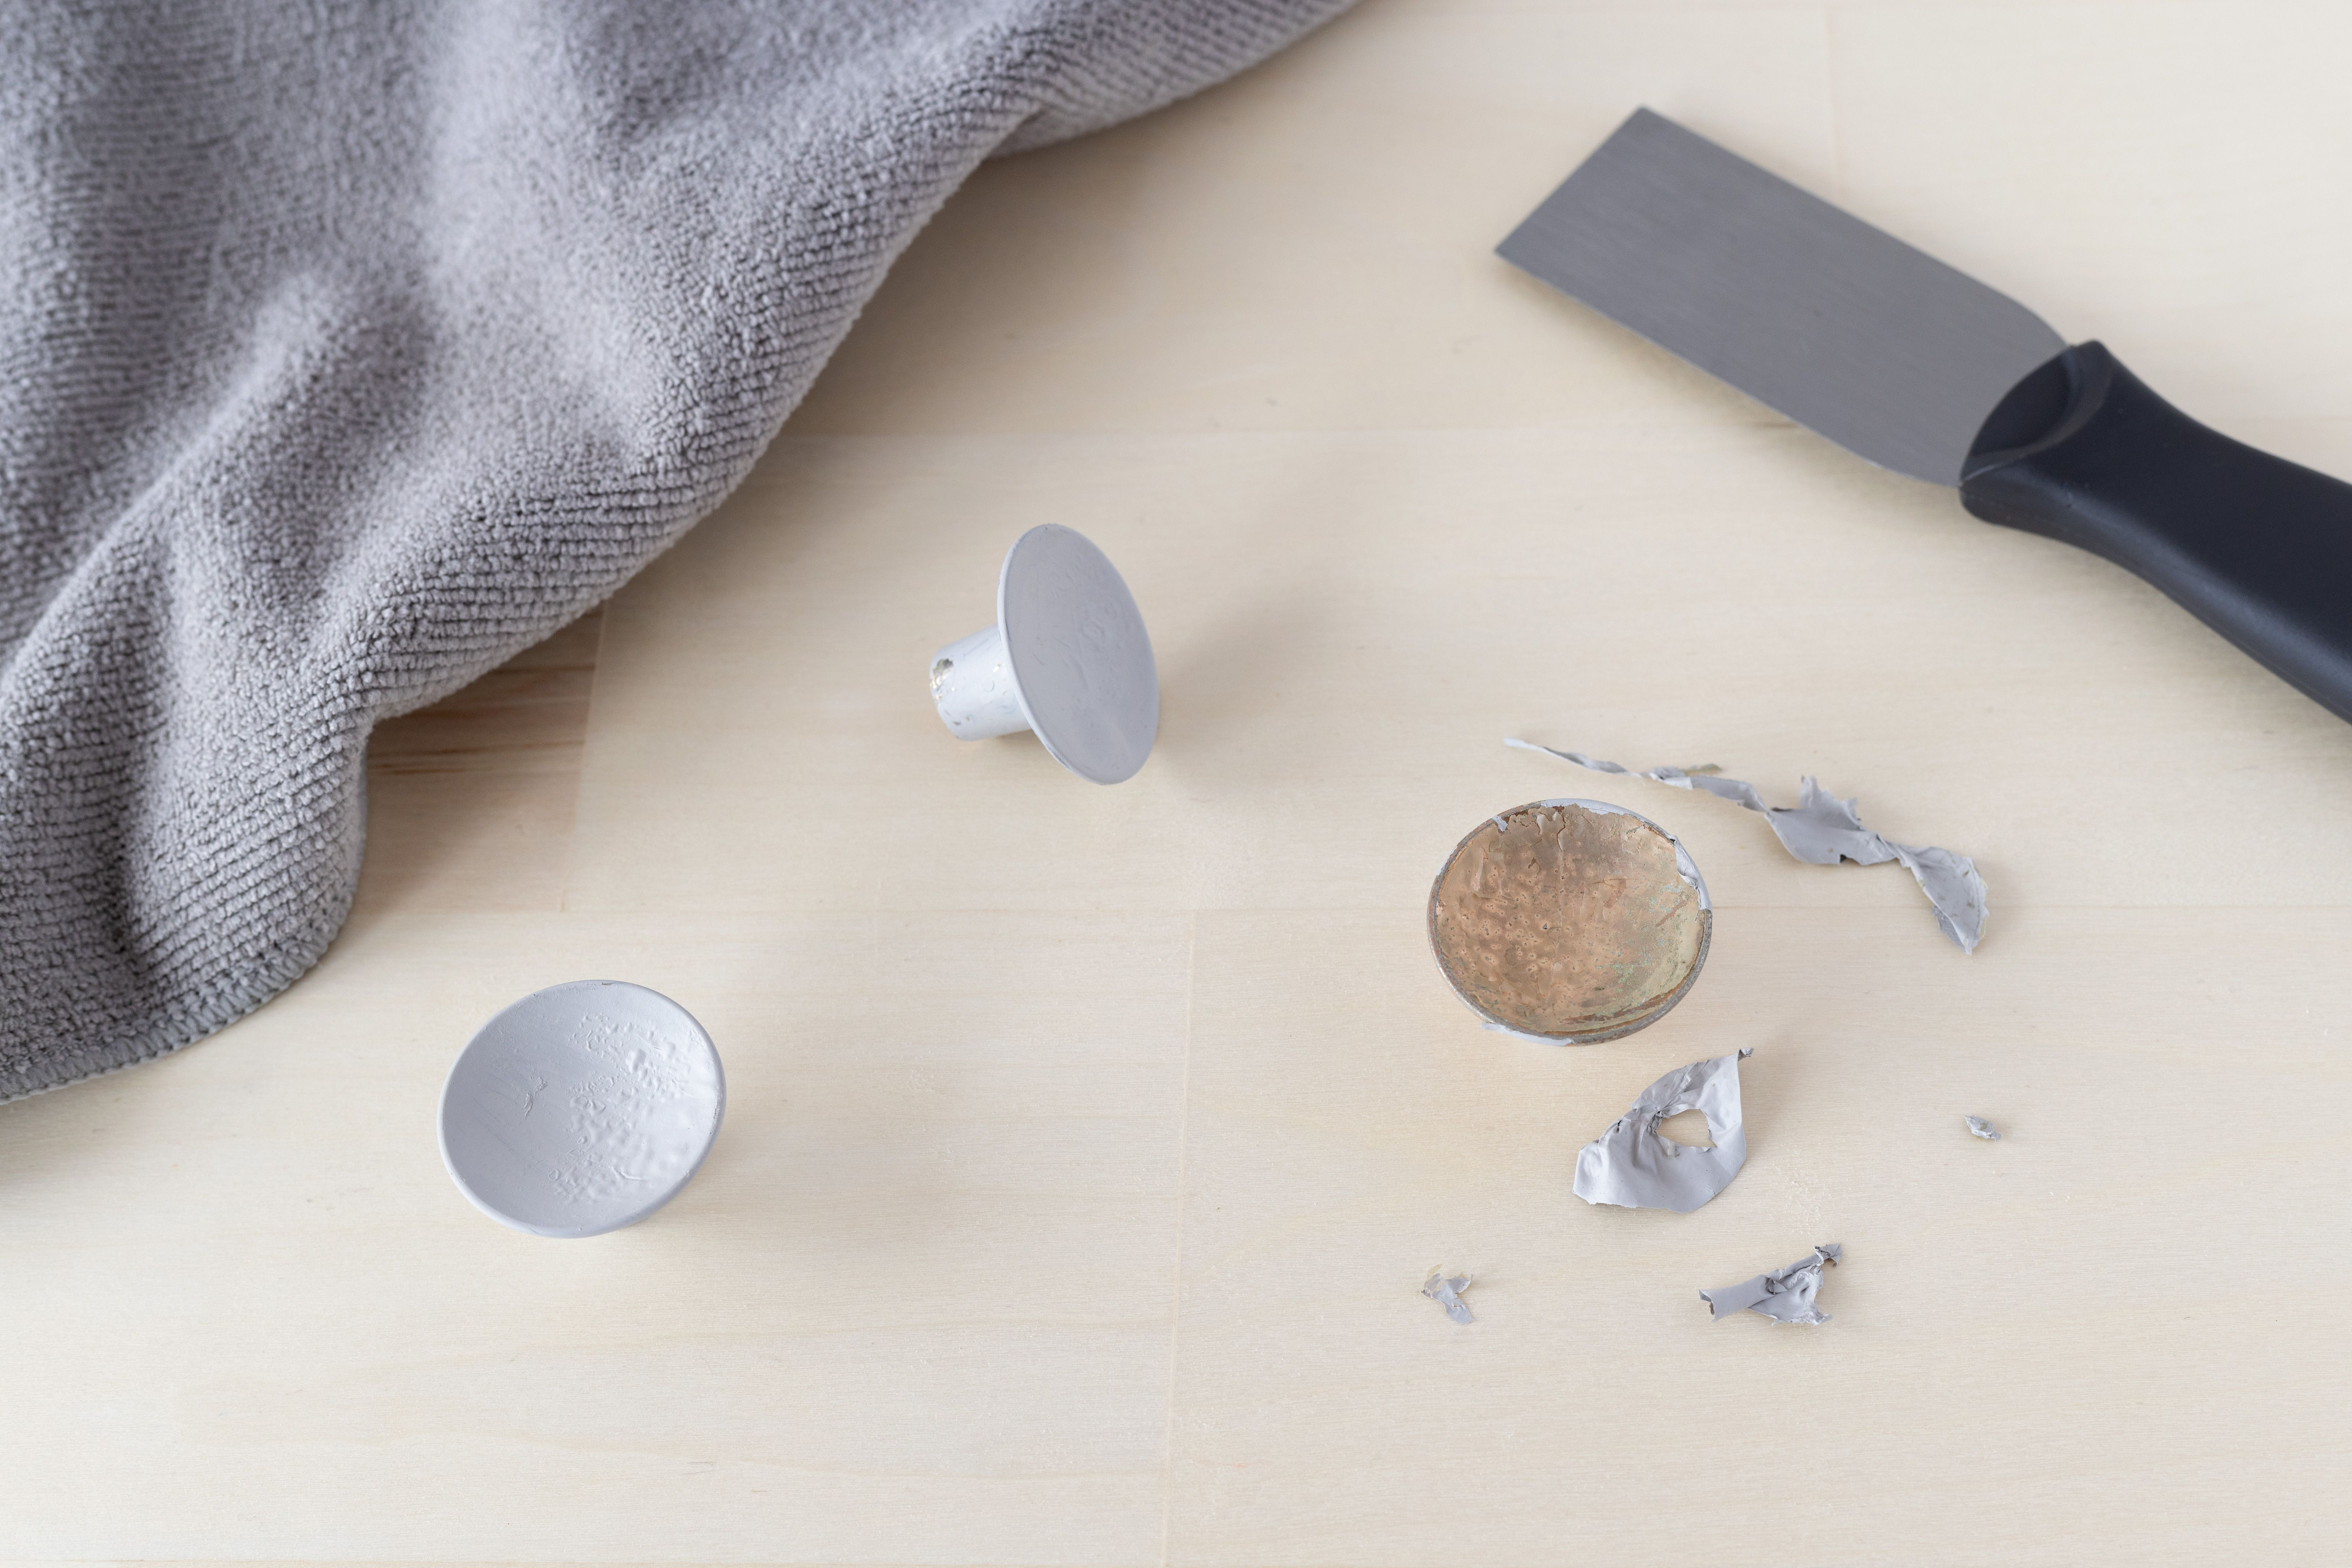 How To Remove Paint From Metal Without Chemicals - How To Get Paint Off Metal Table